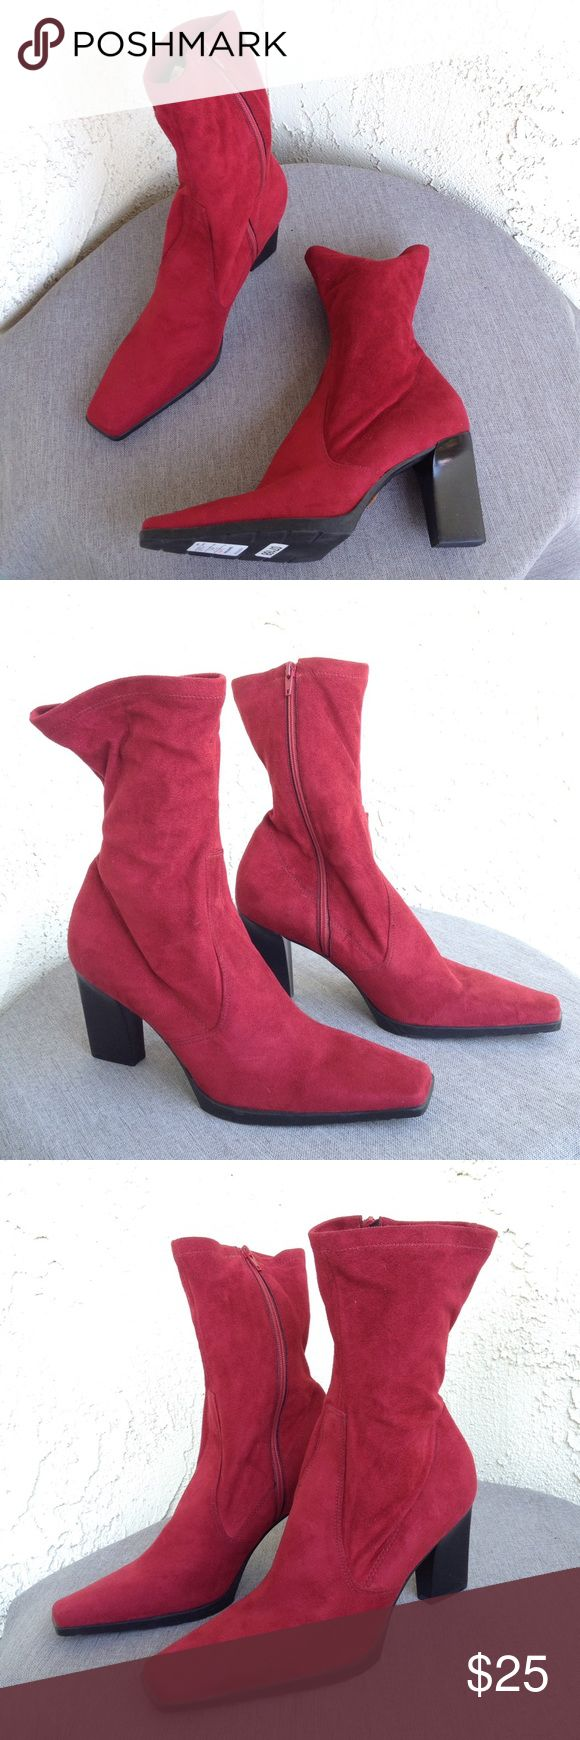 Franco Sarto Red Suede High Ankle Heeled Boots 8.5 Gorgeous red suede heeled booties by Franco Sarto. They are high ankle with a roper style toe, and very soft! They are new with the $70 special price tag from Nordstrom. There is just some small marks on the bottom from them being moved to and from the racks. Absolutely gorgeous, size 8.5!  Stock Number: 0013 Franco Sarto Shoes Ankle Boots & Booties